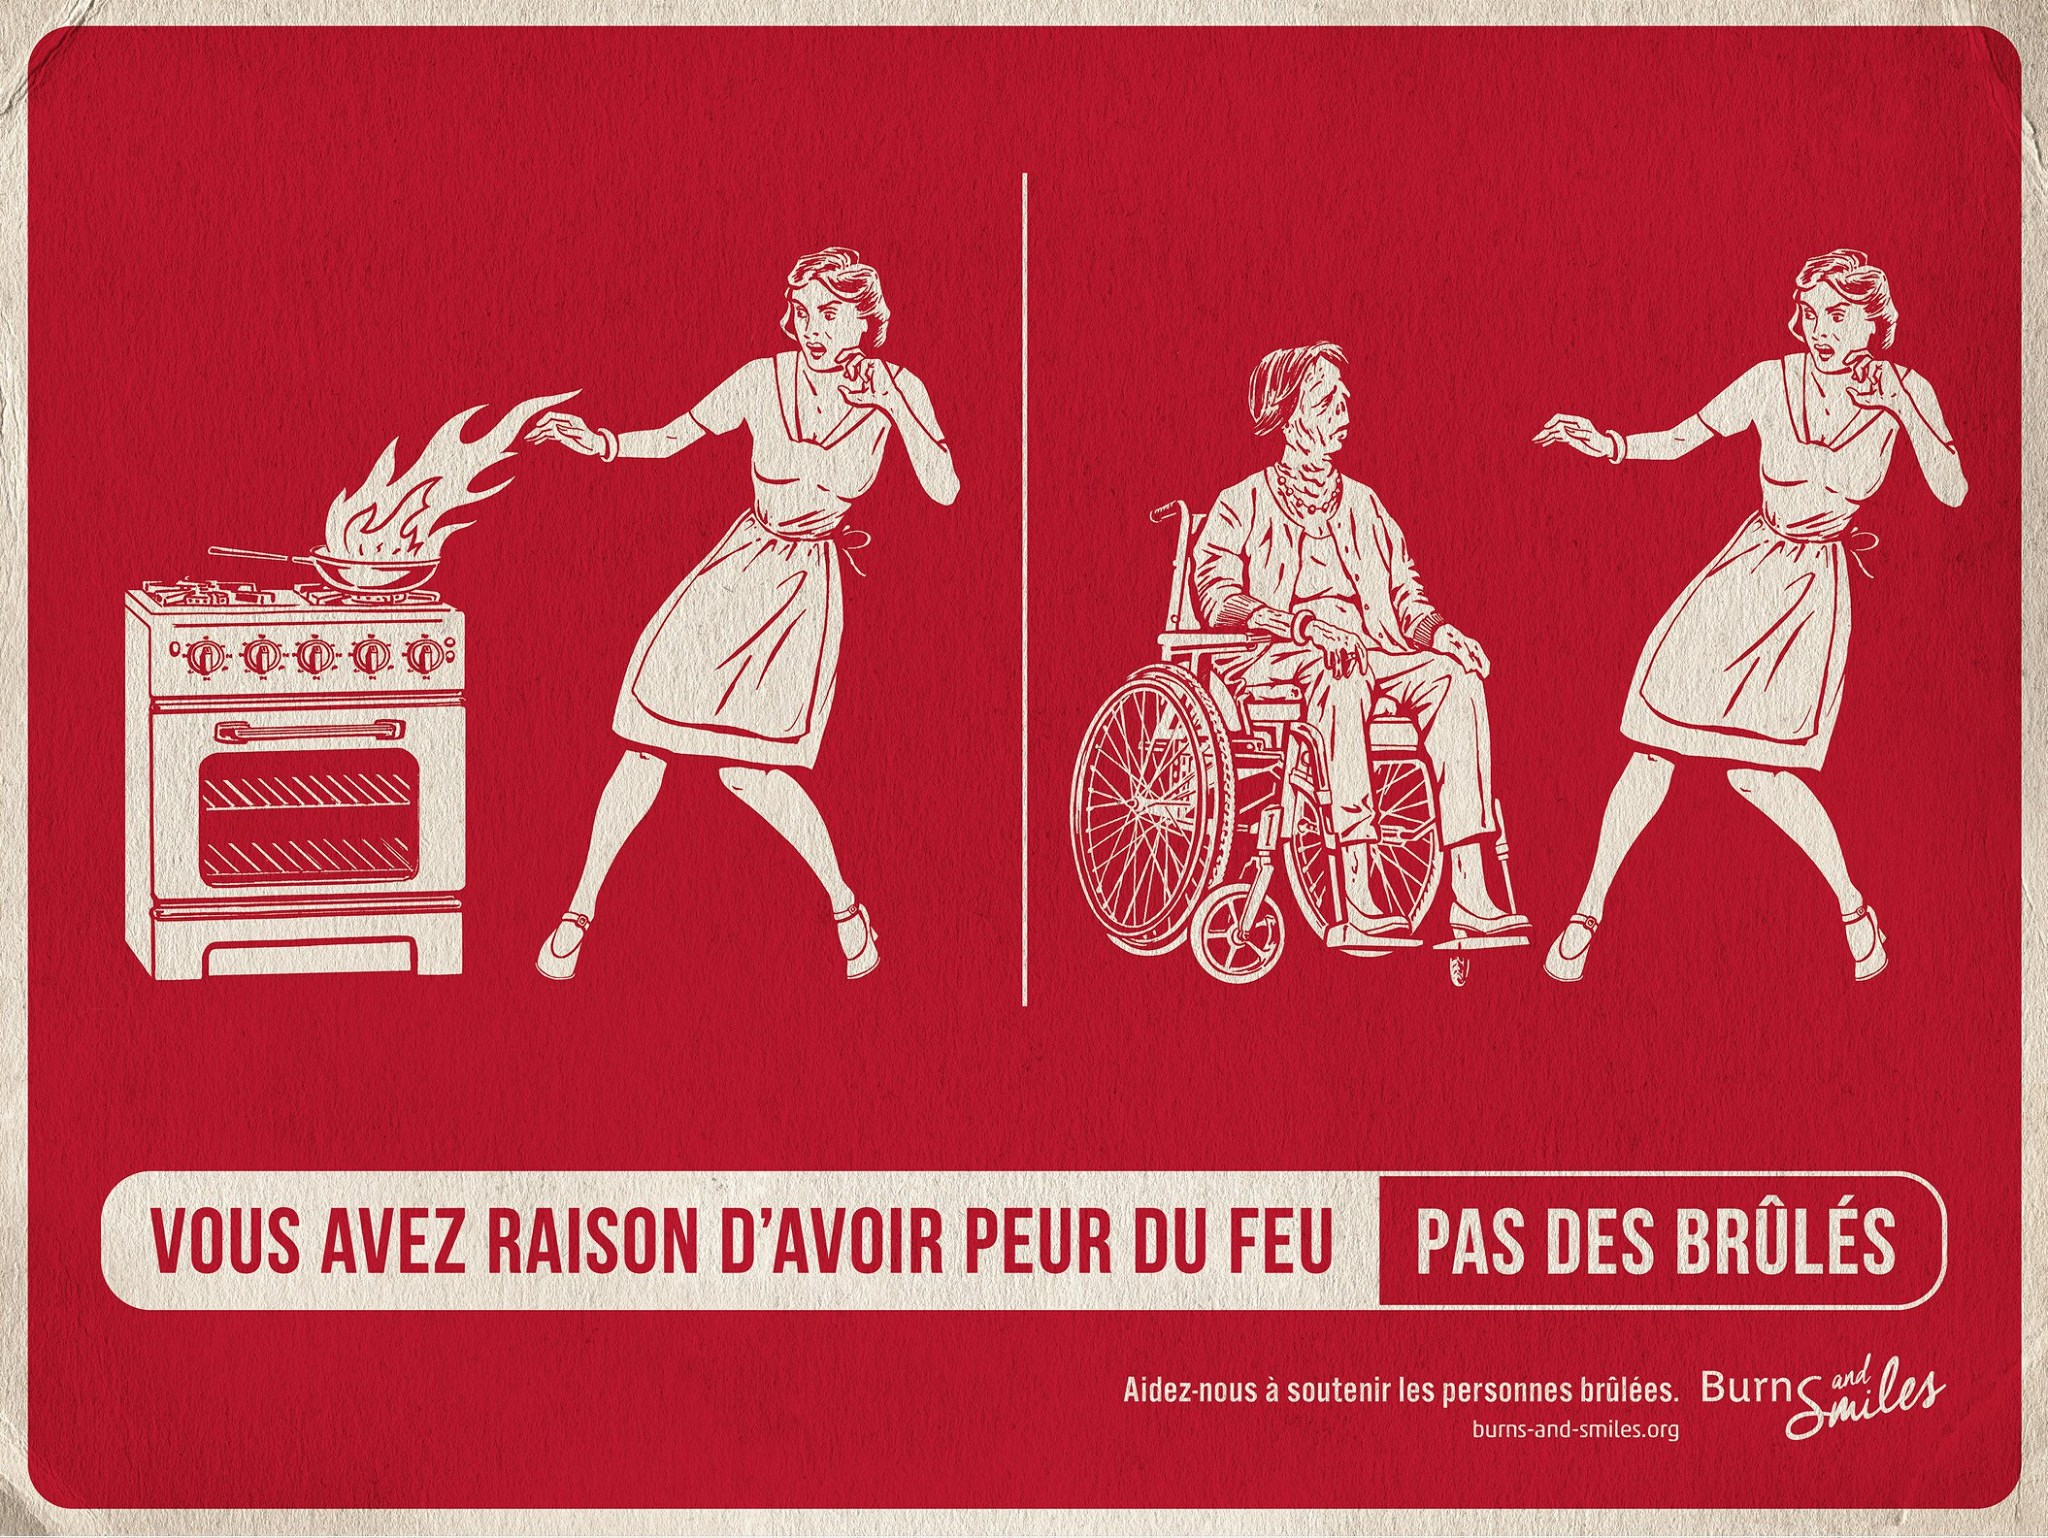 burns-and-smiles-publicite-communication-print-press-ad-feu-brules-burn-agence-tbwa-paris-2